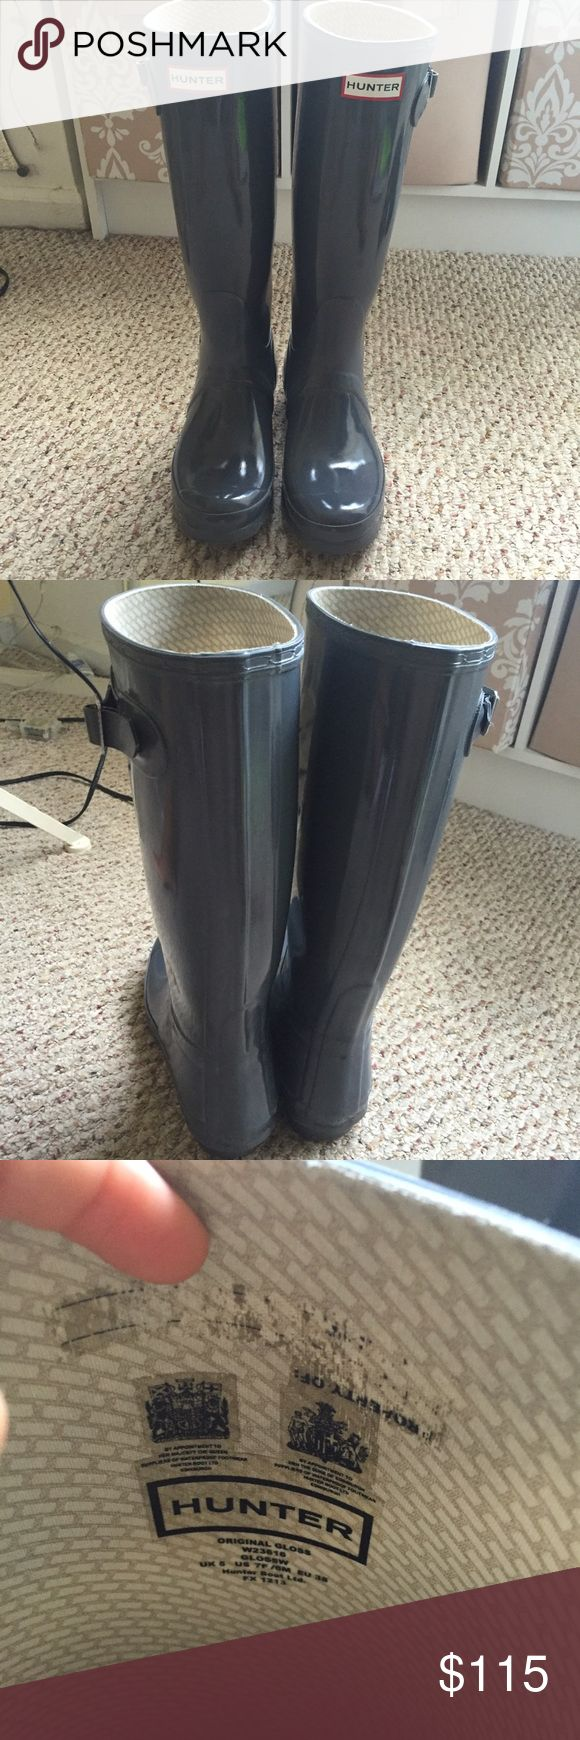 Grey glossy tall hunter boots size 7 In perfect condition! They have some dirt on the bottom but that can be easily washed off, would be willing to possibly trade for black short hunter boots size 7 Hunter Boots Shoes Winter & Rain Boots